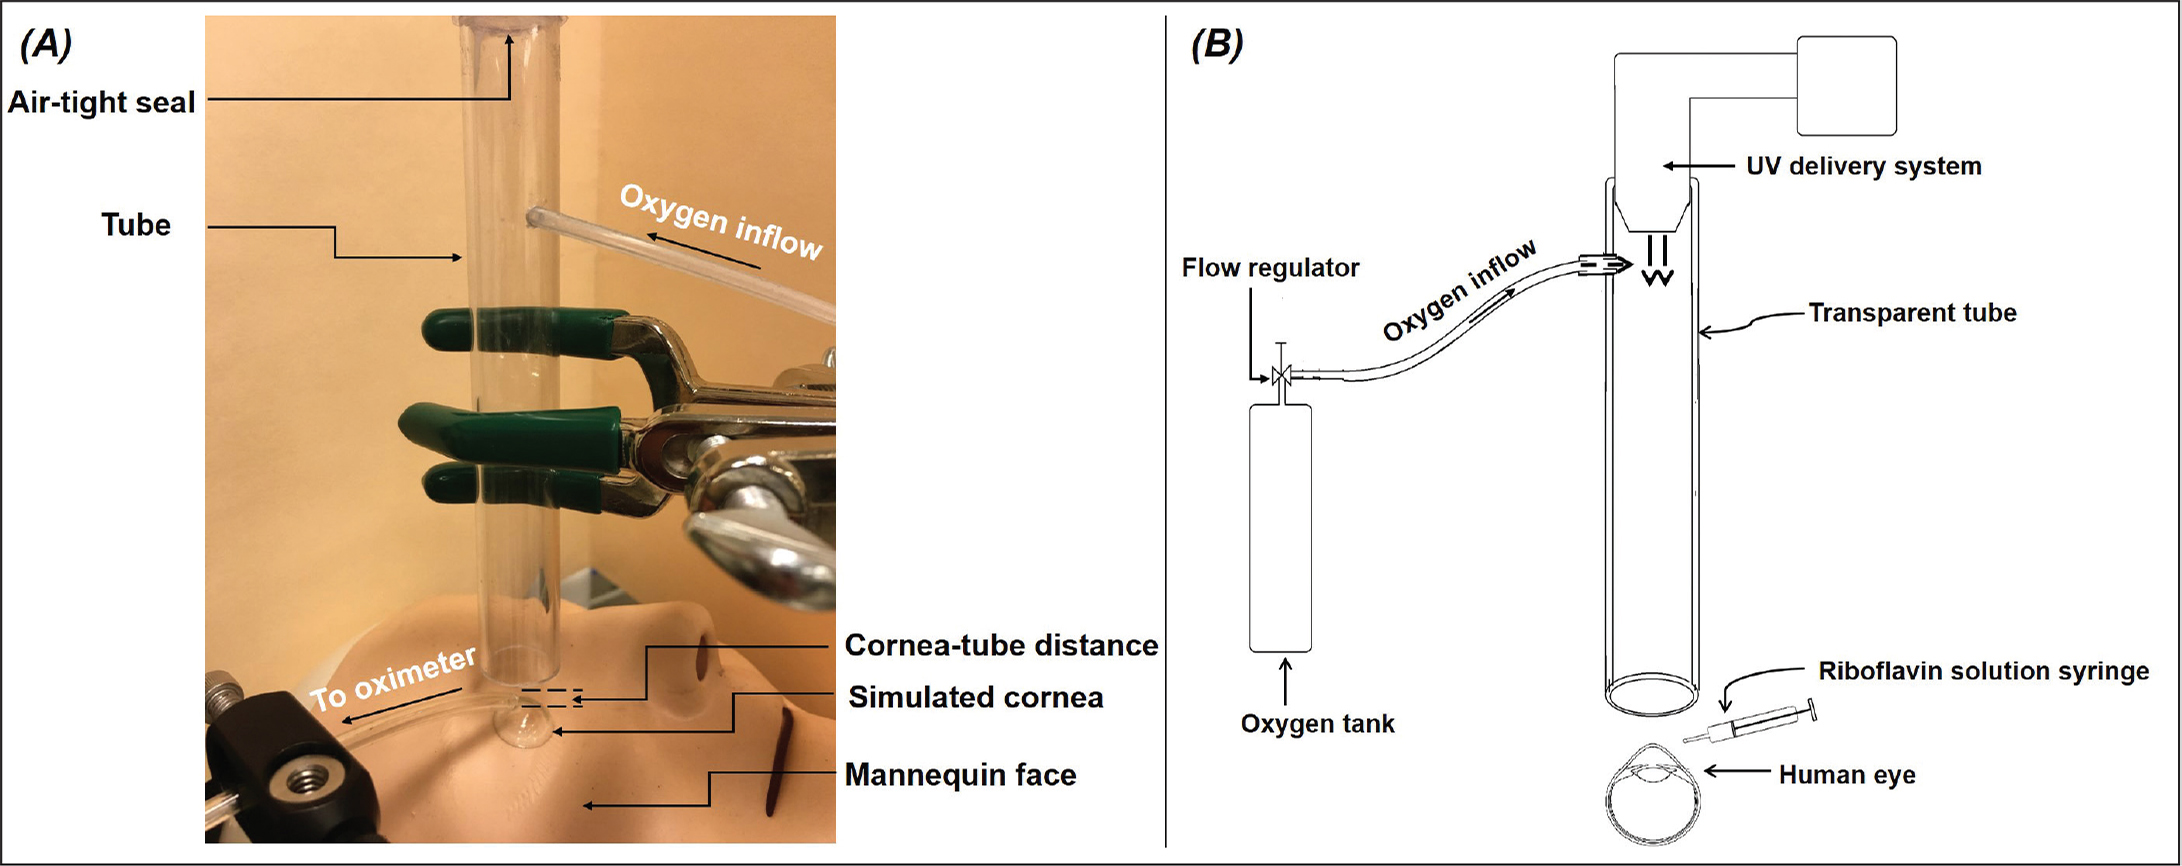 (A) Photograph of the experimental apparatus to measure atmospheric oxygen concentration in a simulated corneal cross-linking (CXL) set-up. Oxygen gas is delivered through a transparent plastic tube to a scleral contact lens that simulates the cornea. The face is simulated by a mannequin. (B) Schematics of the proposed CXL device with coaxial ultraviolet light and oxygen delivery through the transparent tube.